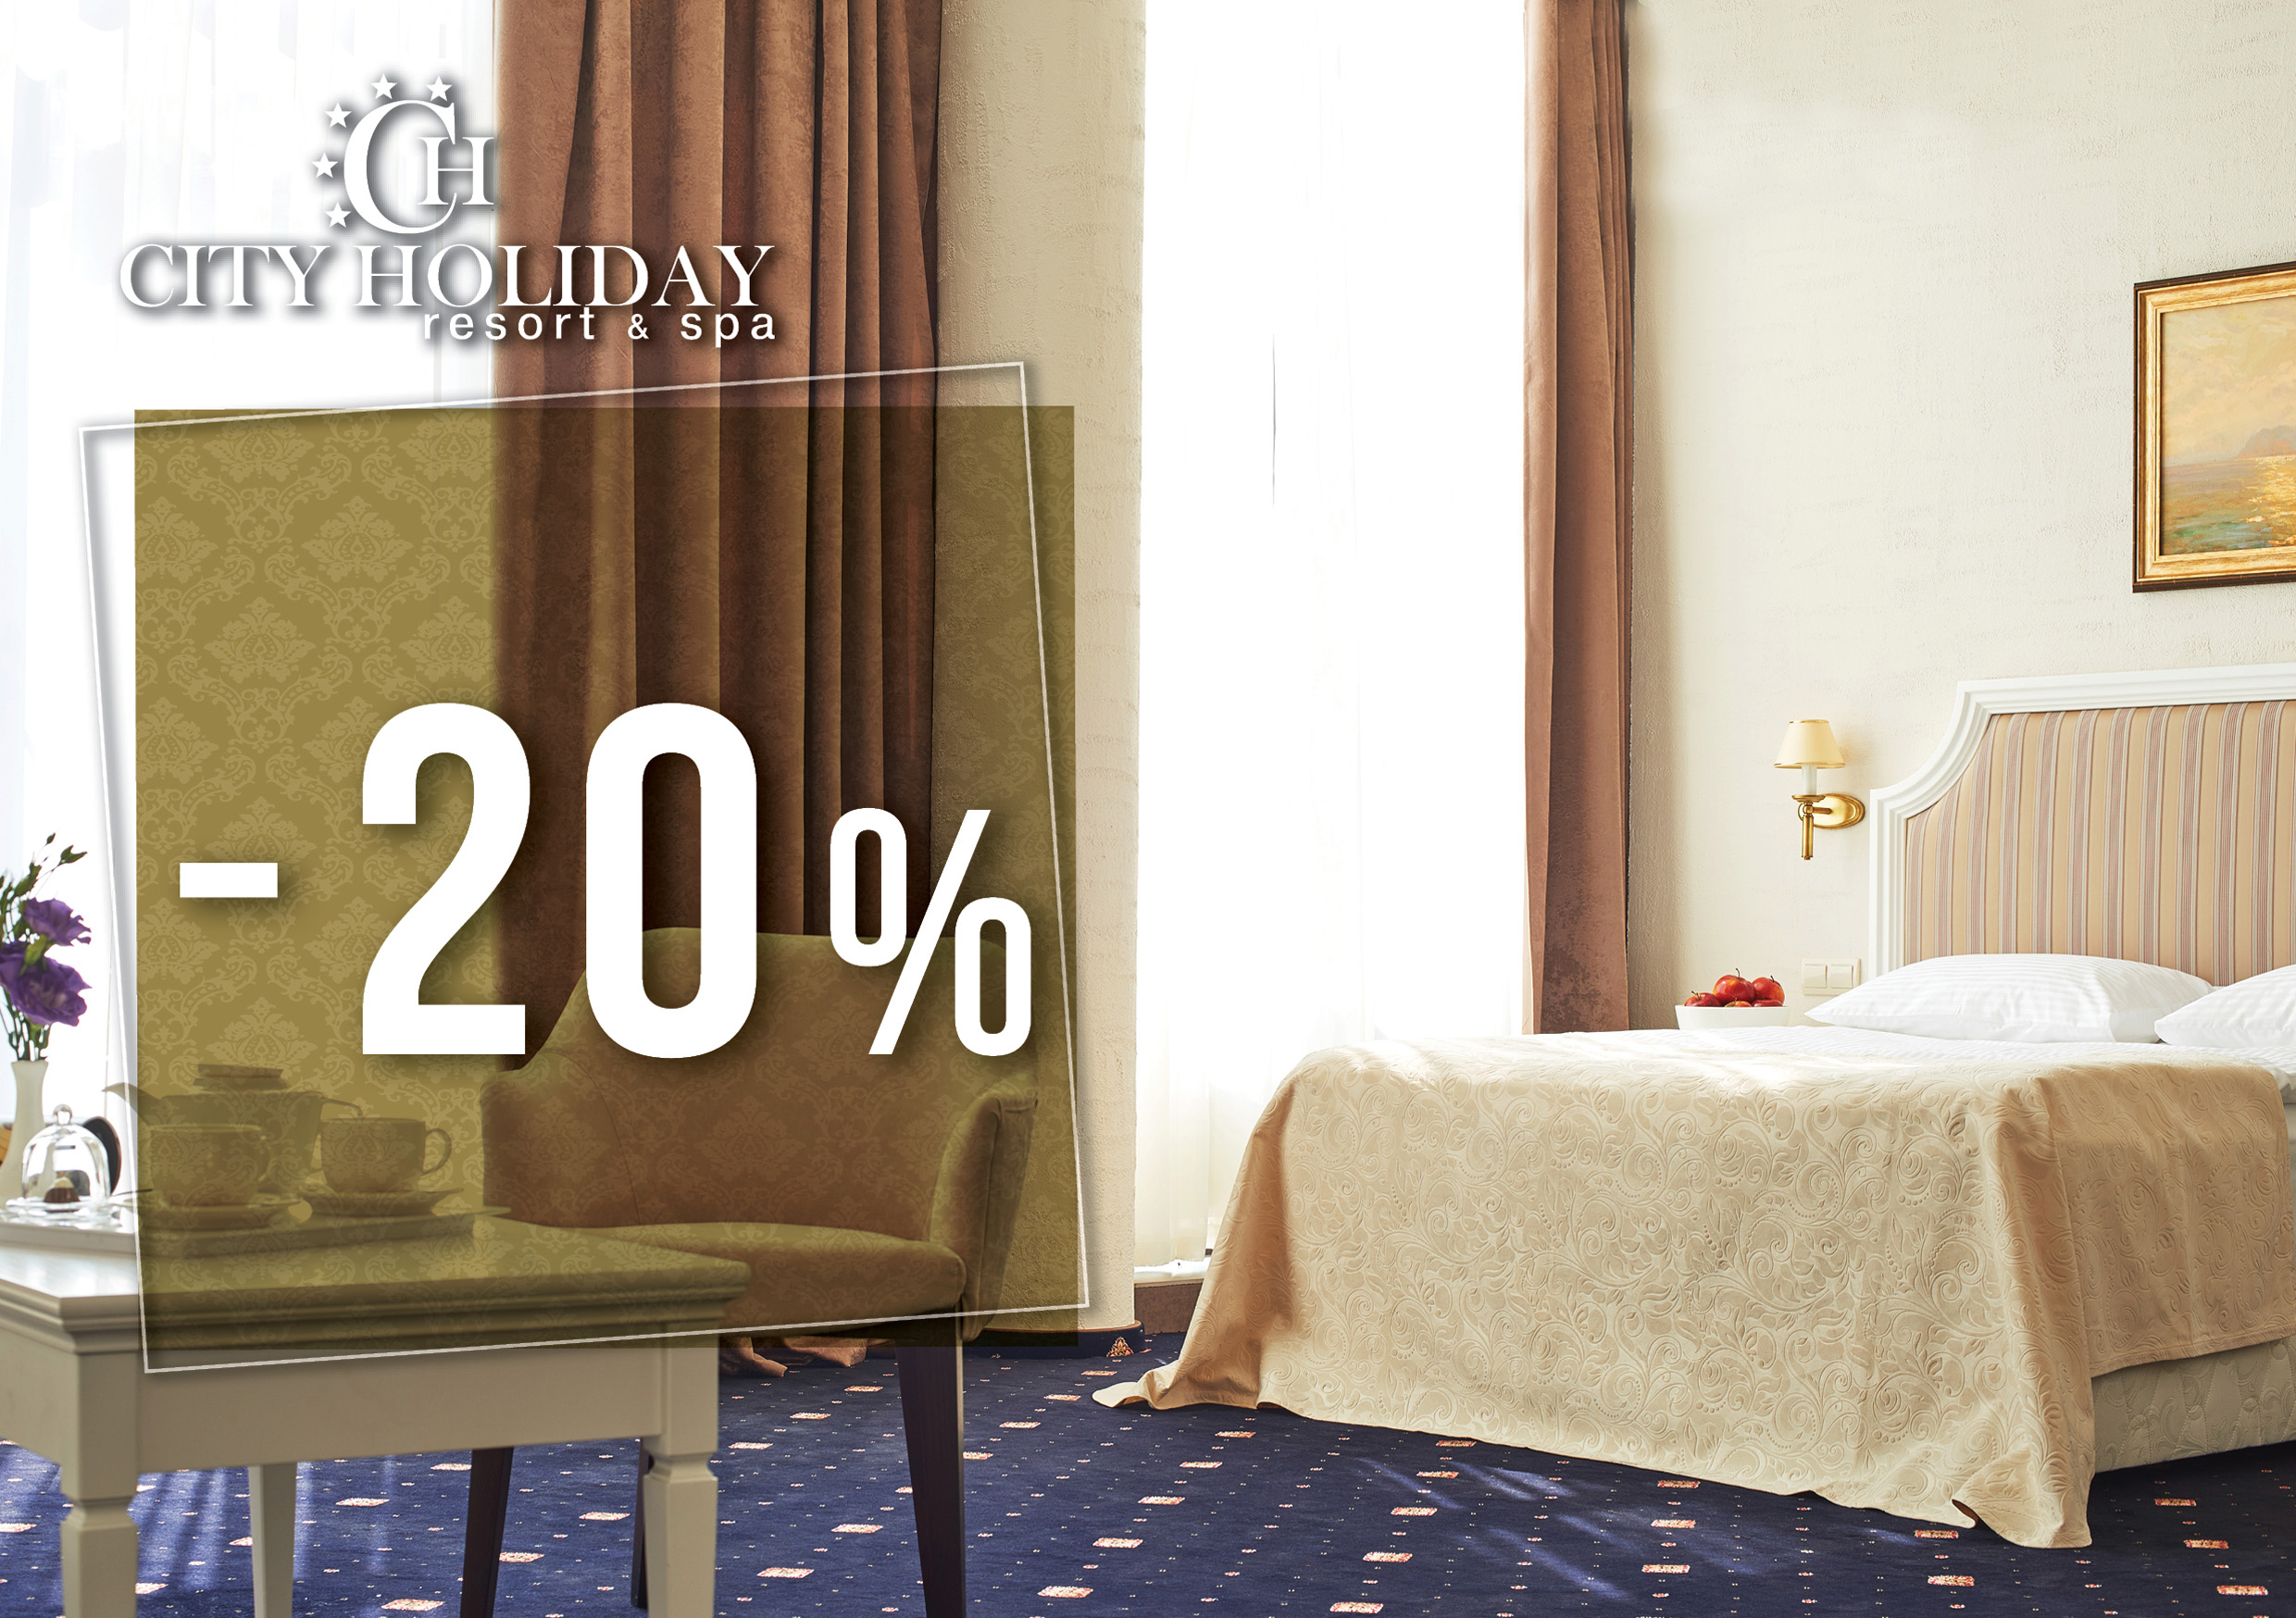 Special offer on accommodation in City Holiday Resort & SPA!